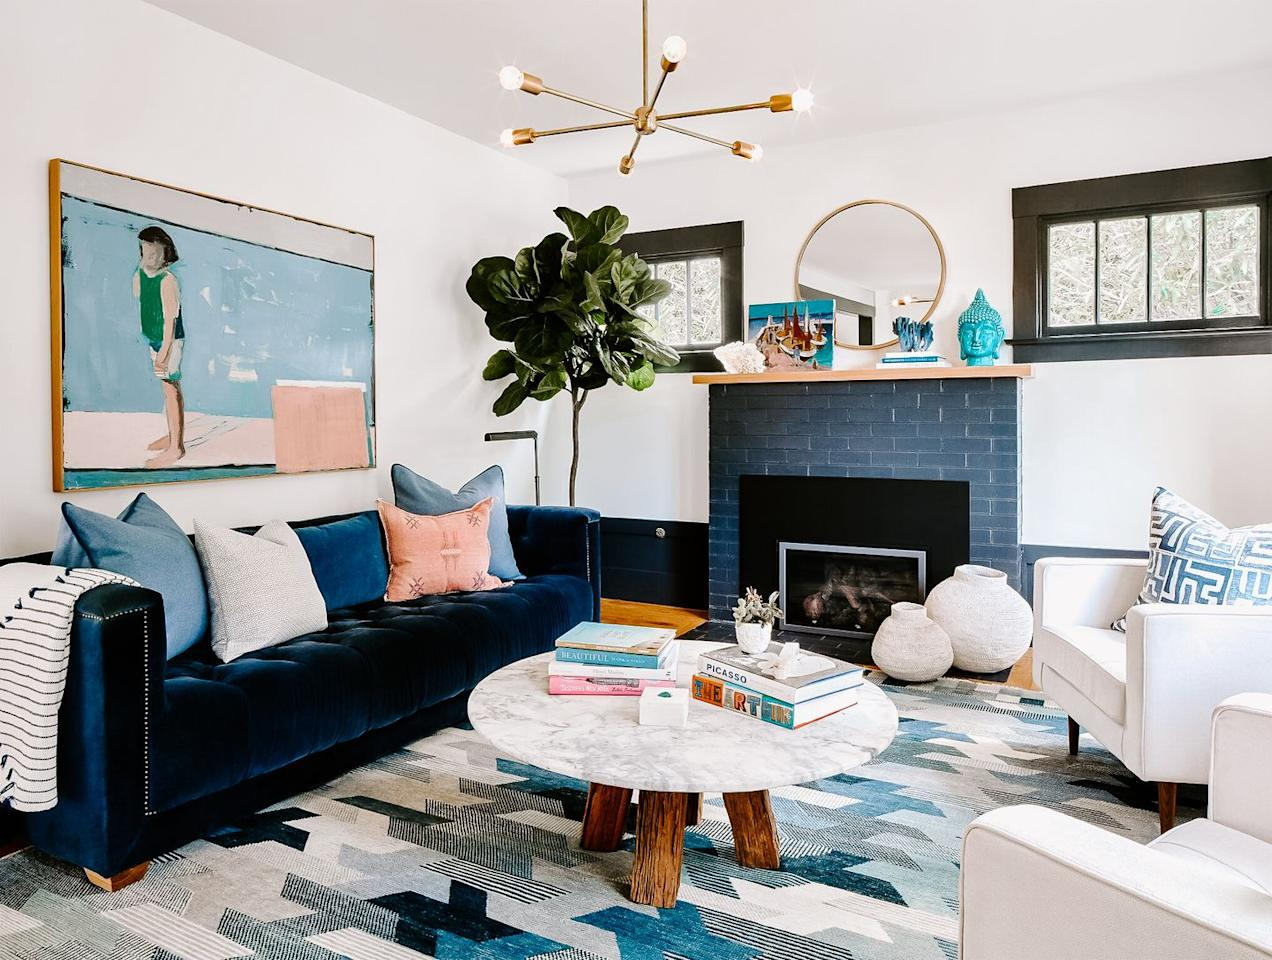 "<p>Shades of blue and pops of pink create a serene contemporary atmosphere in this space from <a href=""https://deringhall.com/interior-designers/lark-palm"">Lark + Palm</a>.</p>"